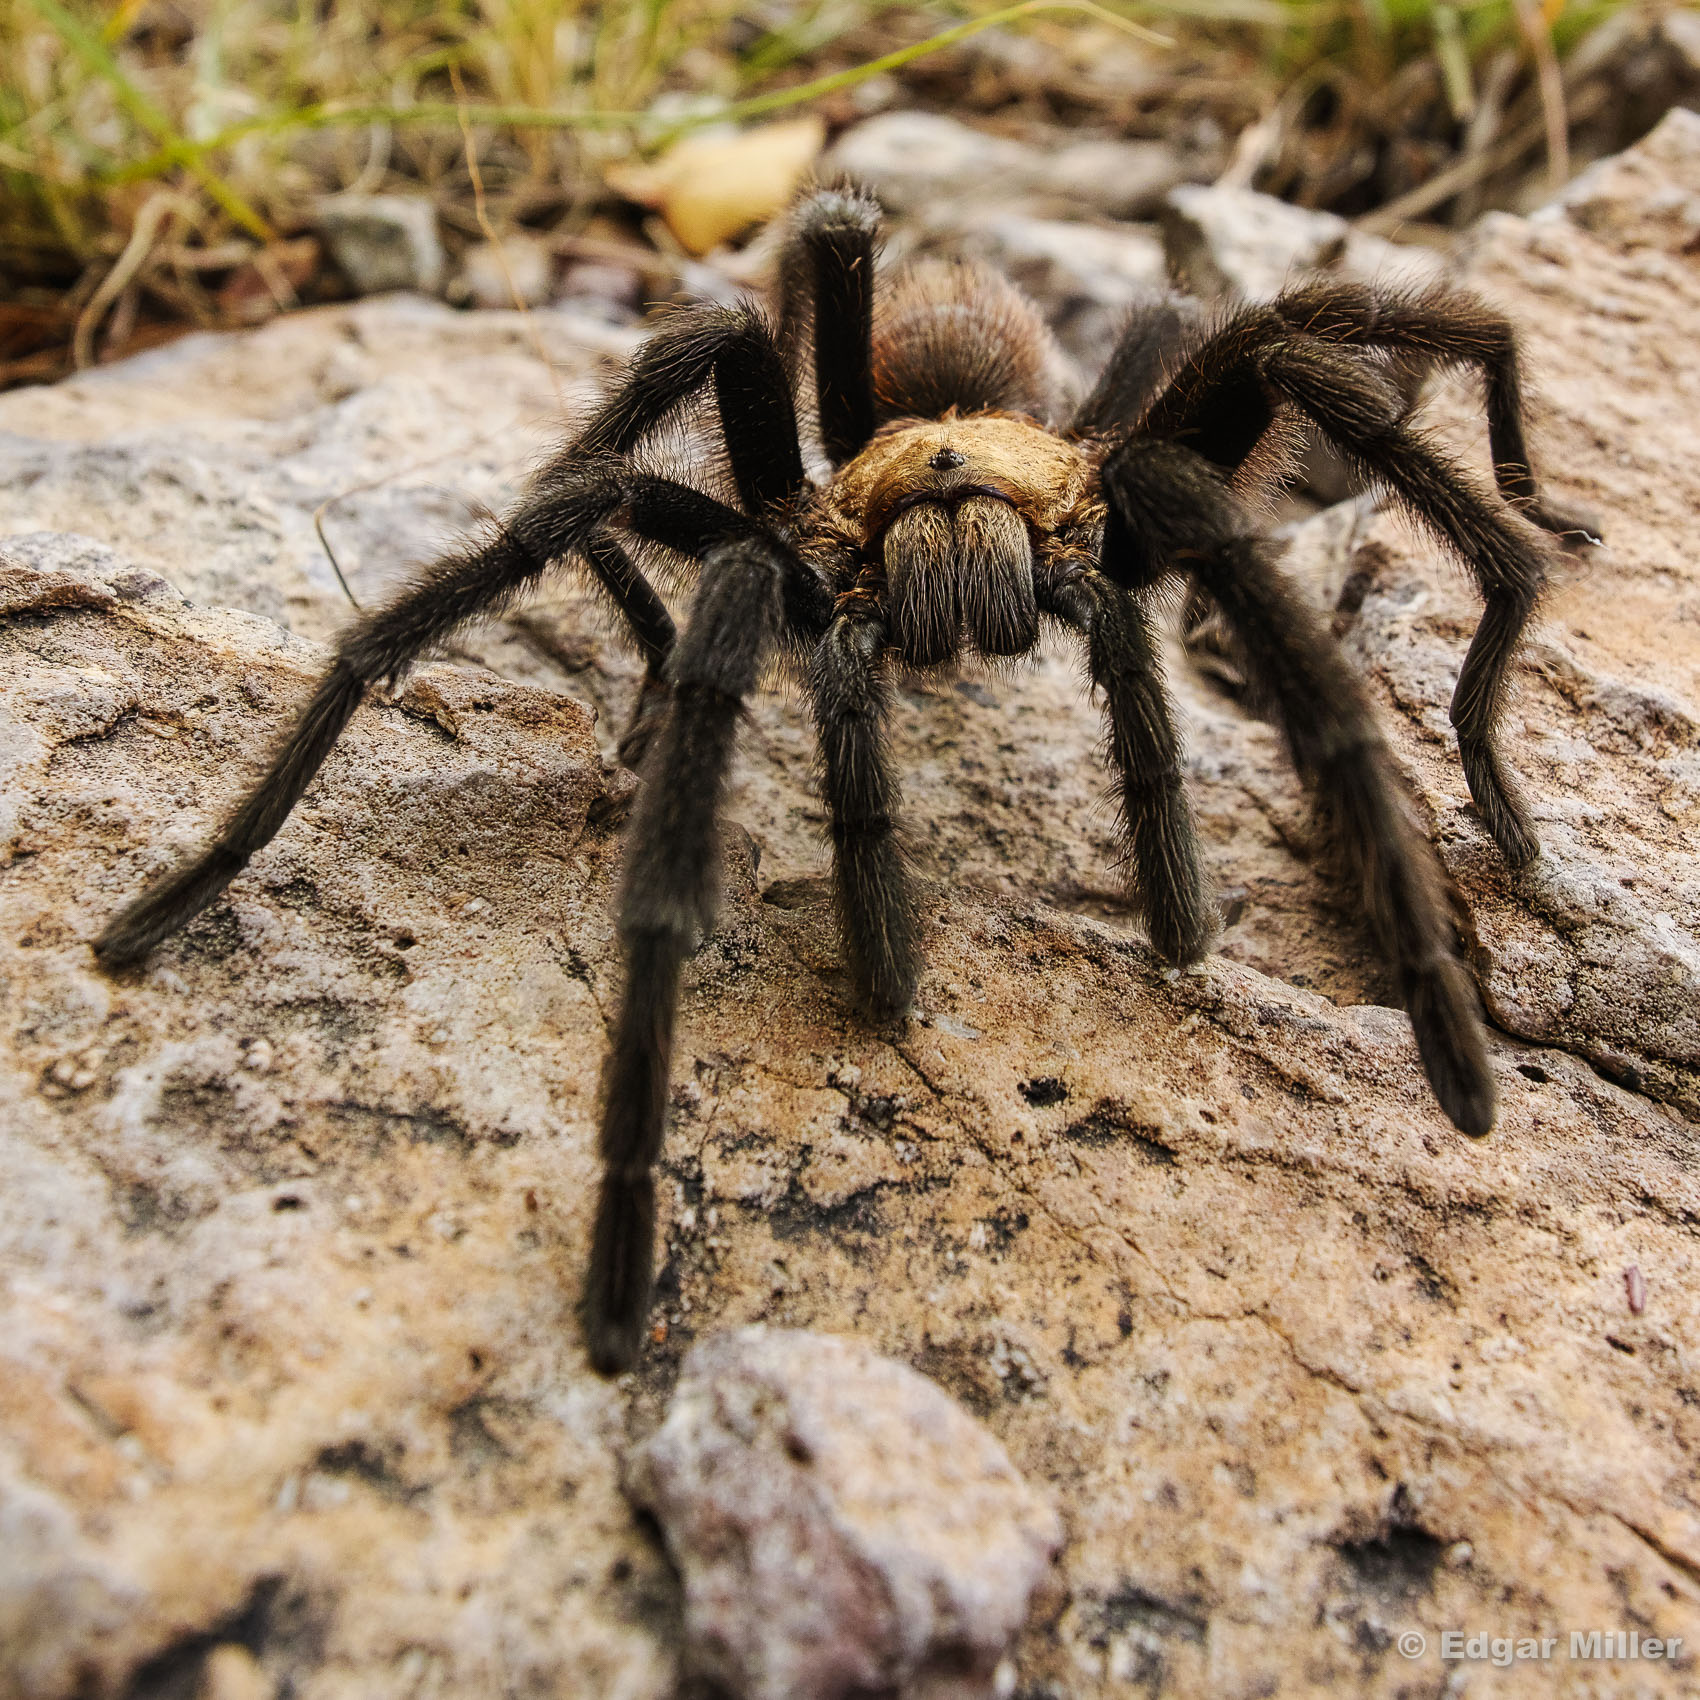 West Texas Brown Tarantula